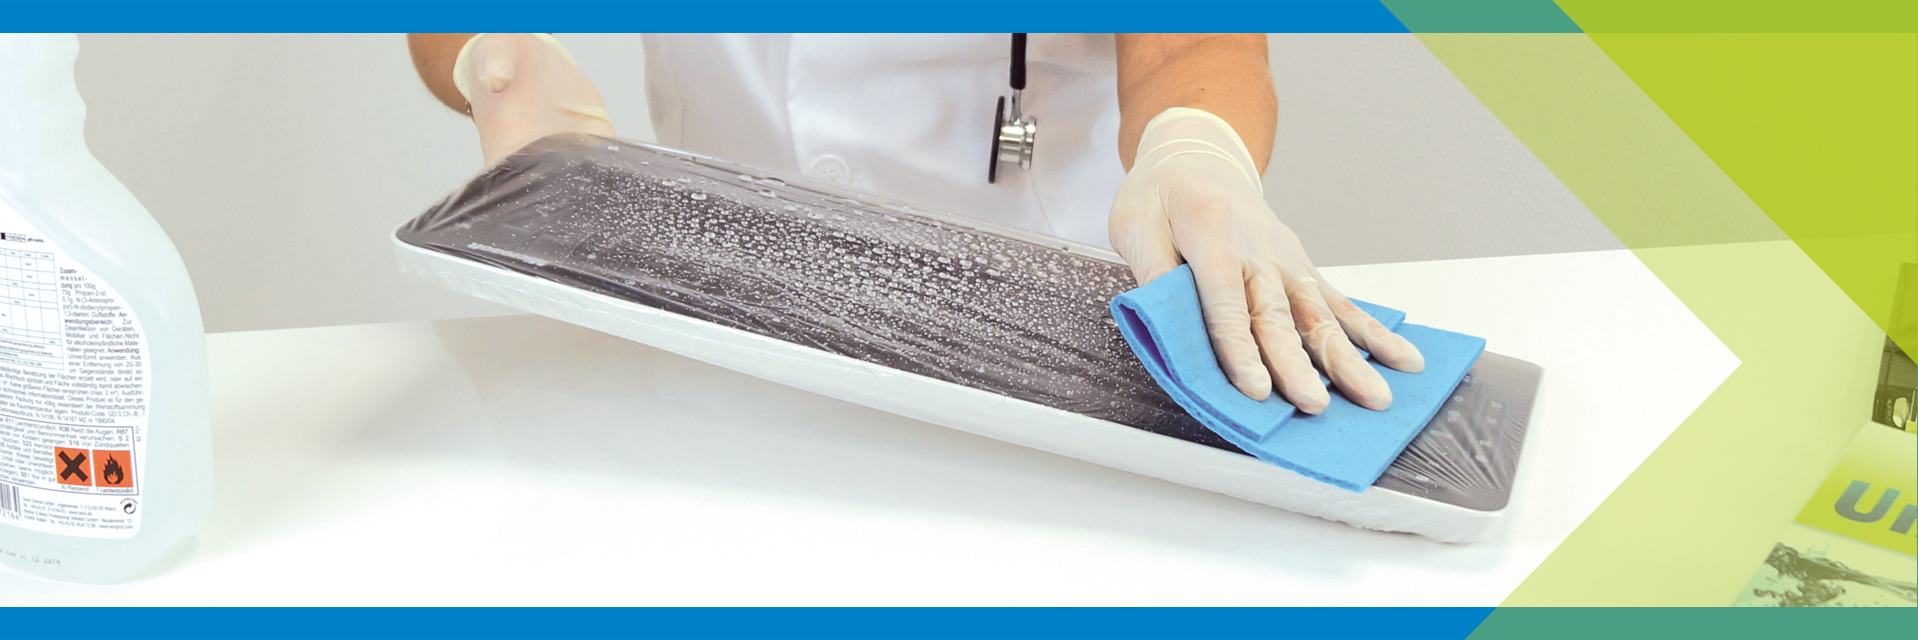 Easy cleaning of universal flexible keyboard cover UNI FLEX - Baaske Medical